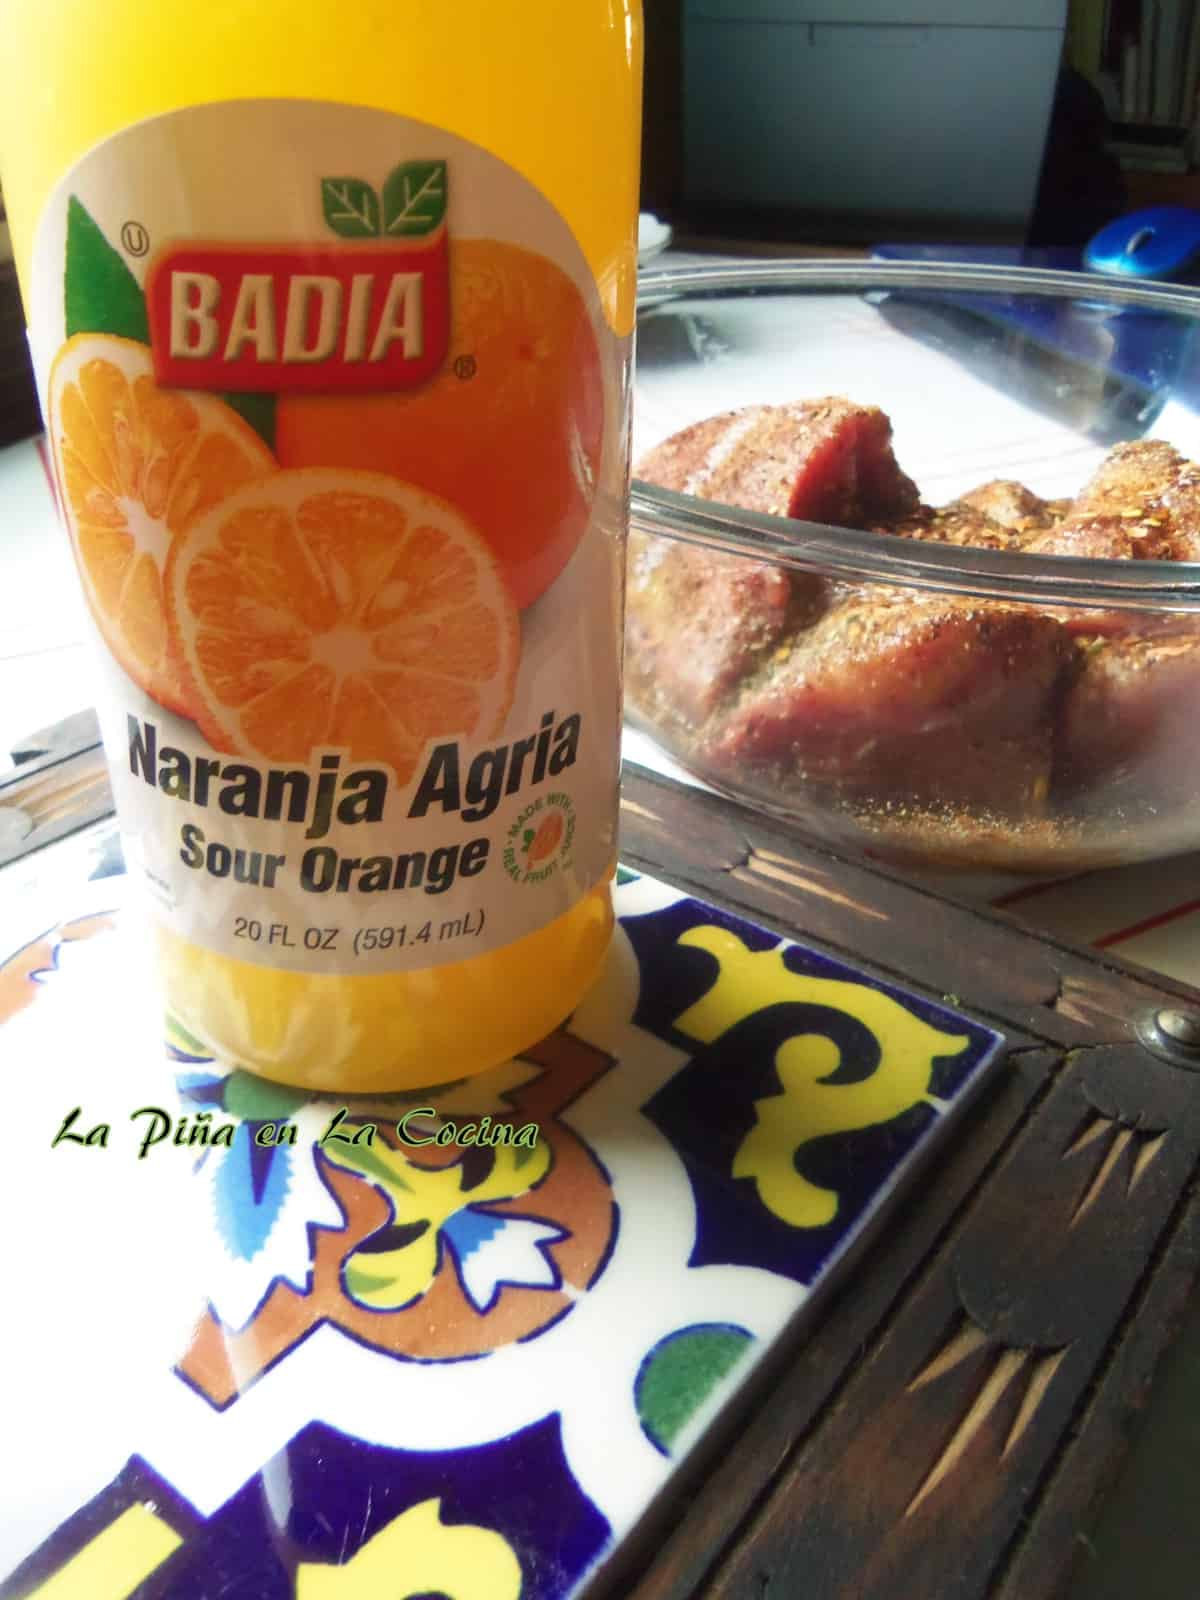 A little help from the store with this Badia Brand Sour Orange Marinade